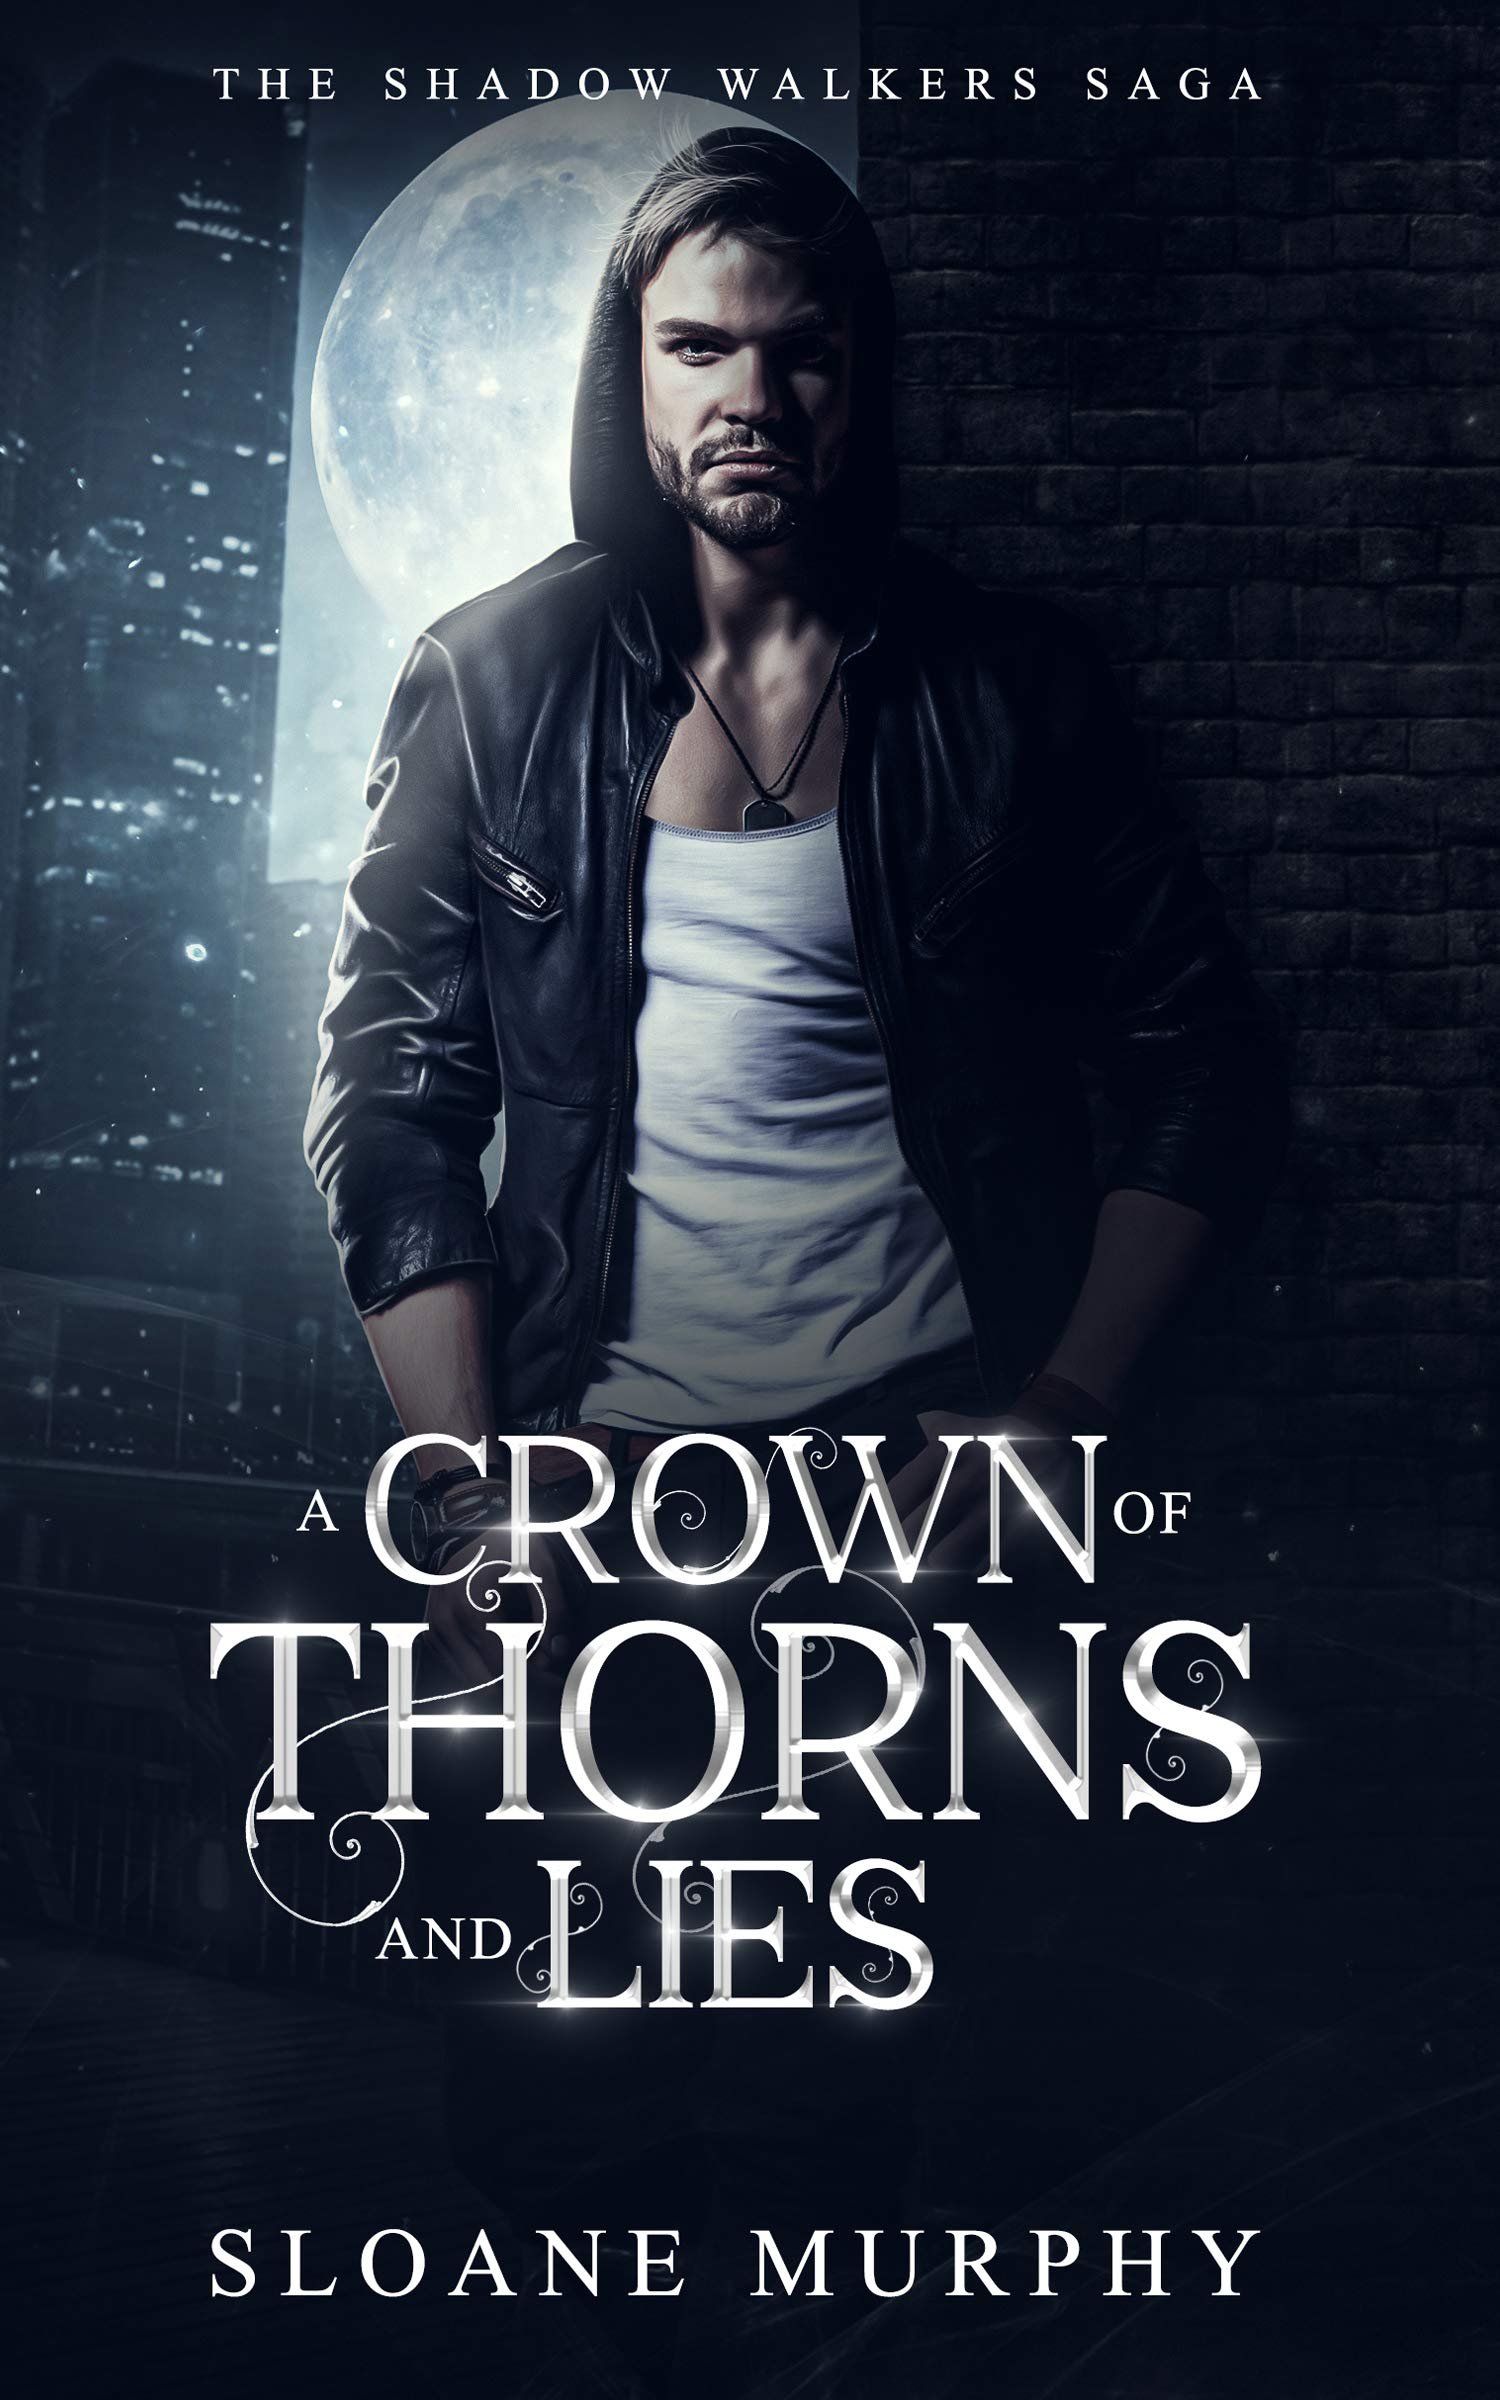 A Crown of Thorns and Lies (The Shadow Walkers Saga, #4)